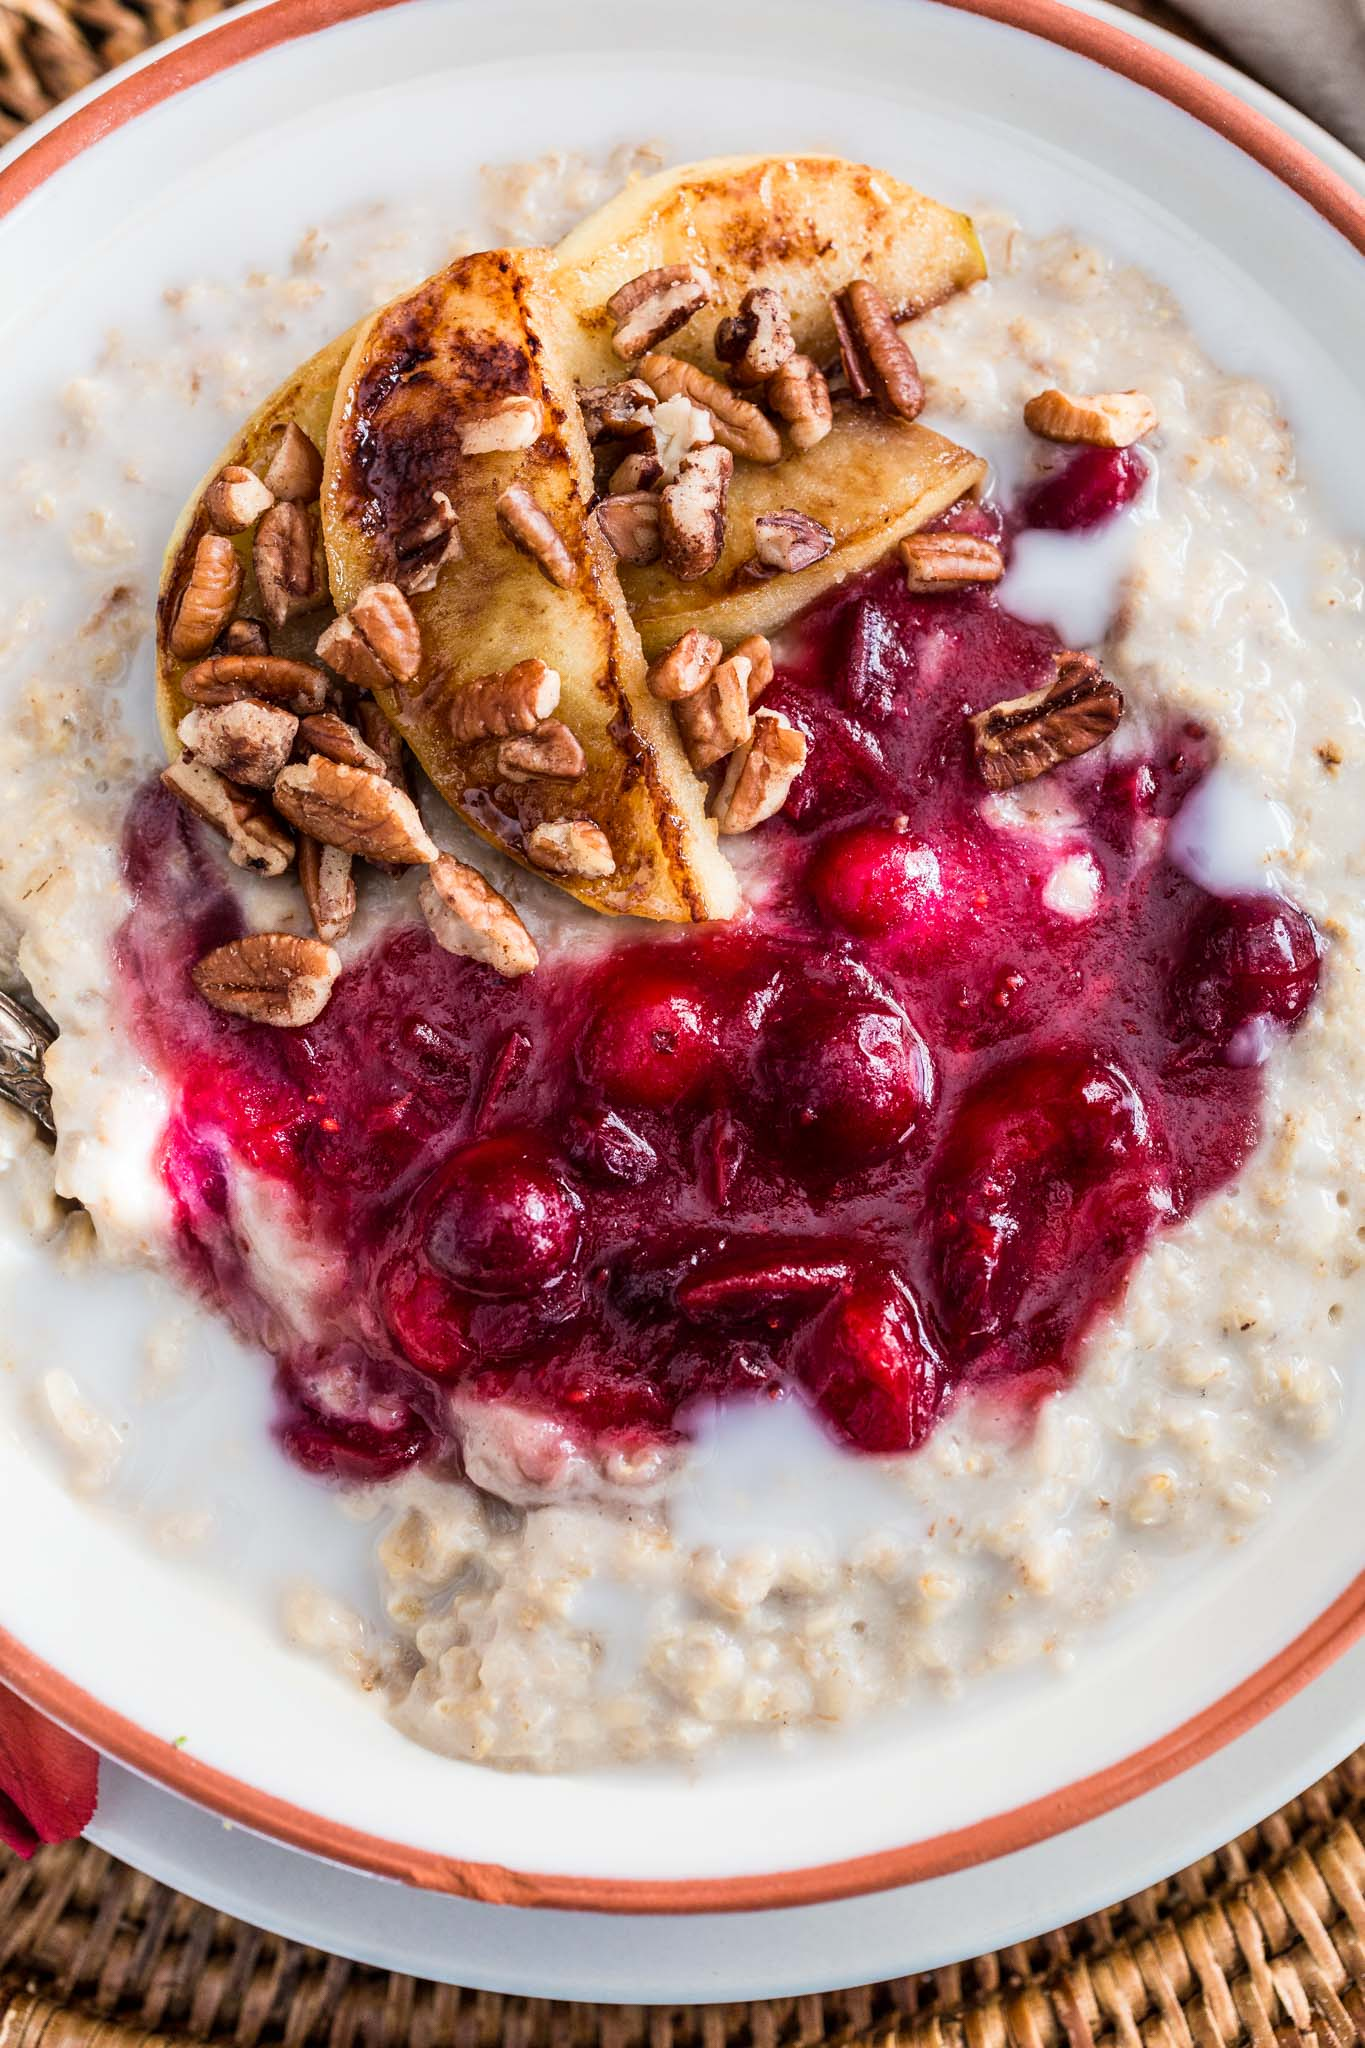 Christmas Oats Porridge with Cranberry Sauce, Apples and Pecans | www.oliviascuisine.com | Waking up to a special breakfast on Christmas morning is a must! This festive porridge is not only delicious but also heartwarming. Sweet, tart, creamy and crunchy goodness. What else could we wish for?